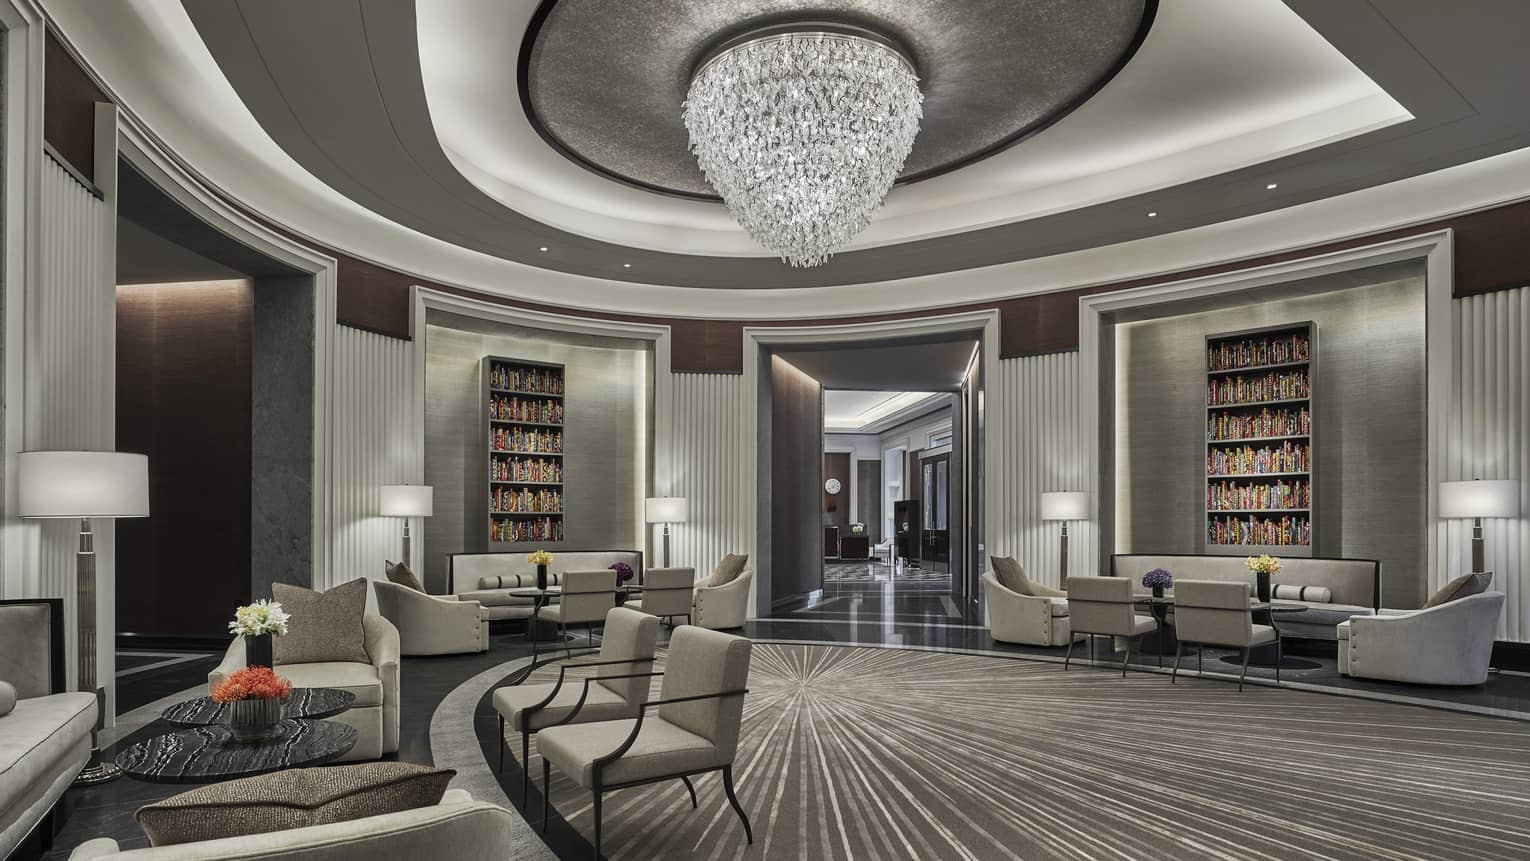 the chic, modern lobby at four seasons hotel boston one dalton